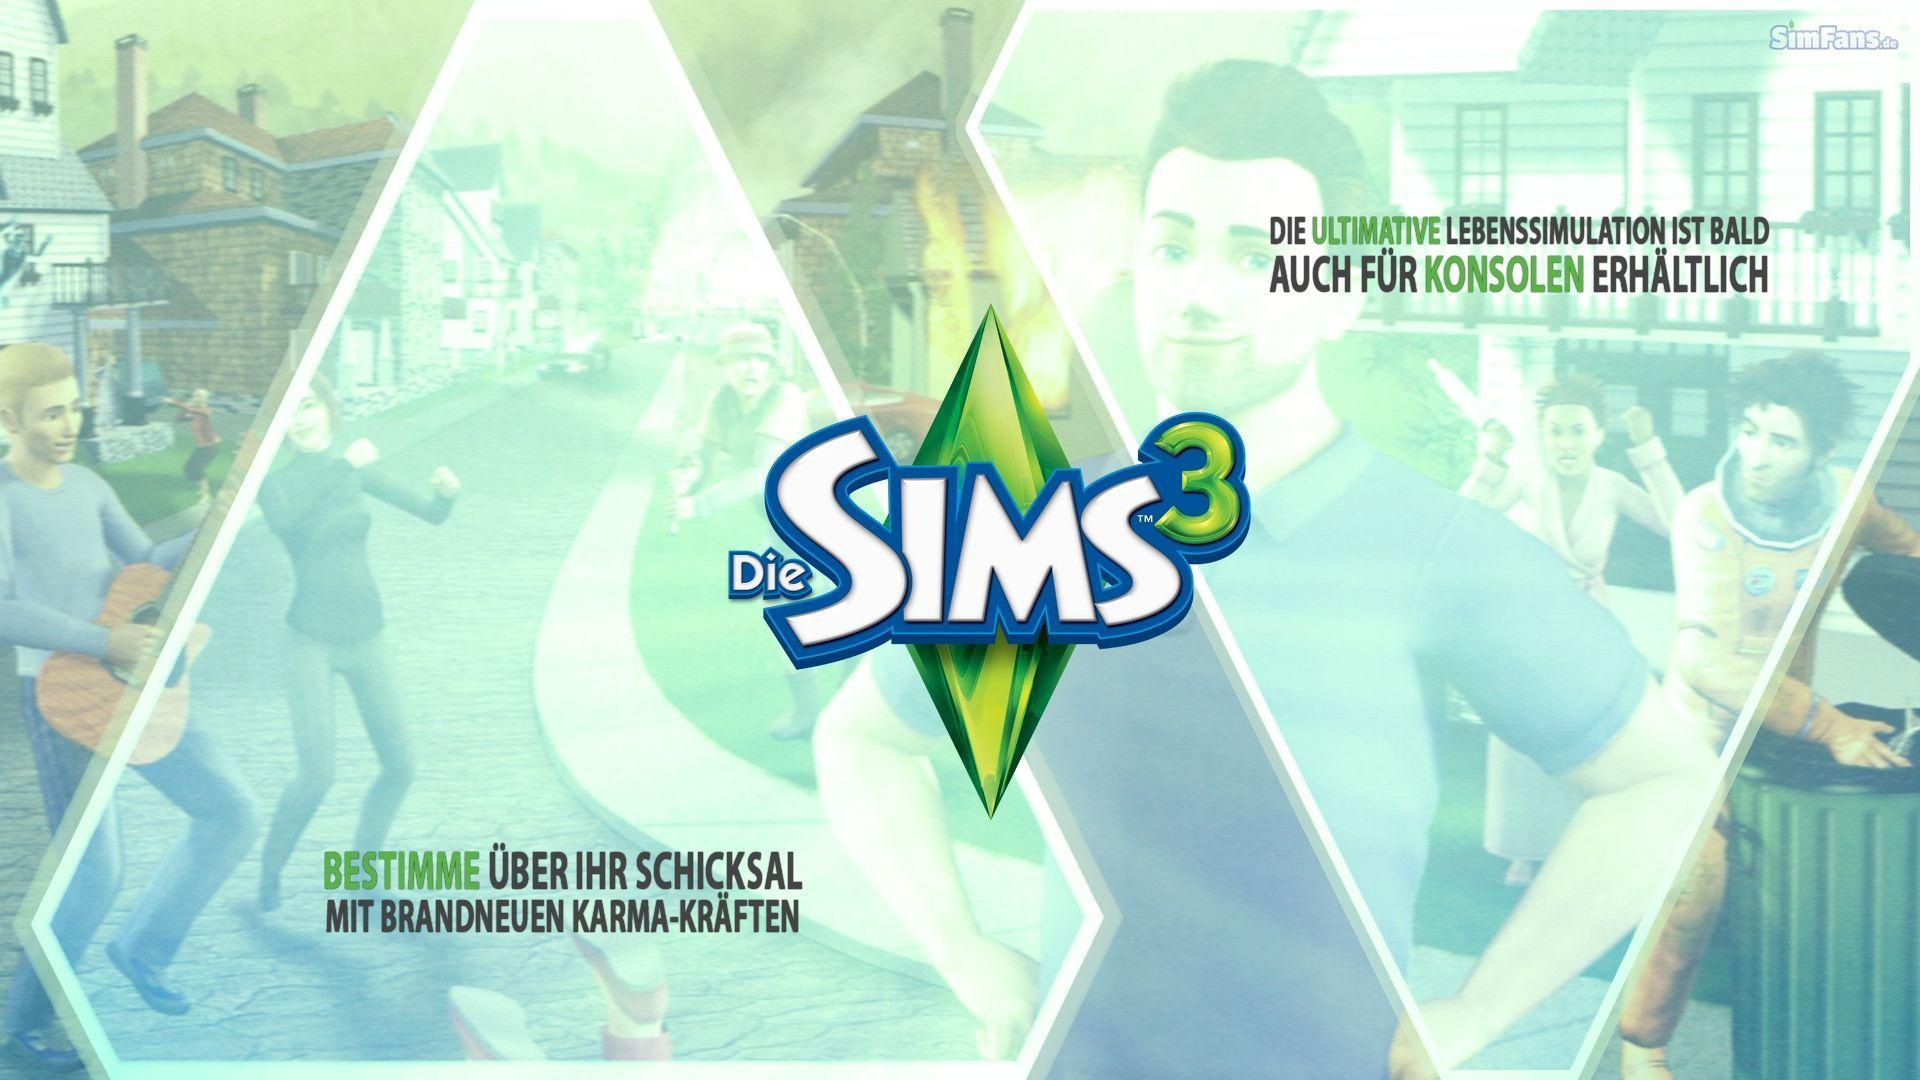 sims 3 wallpapers HD